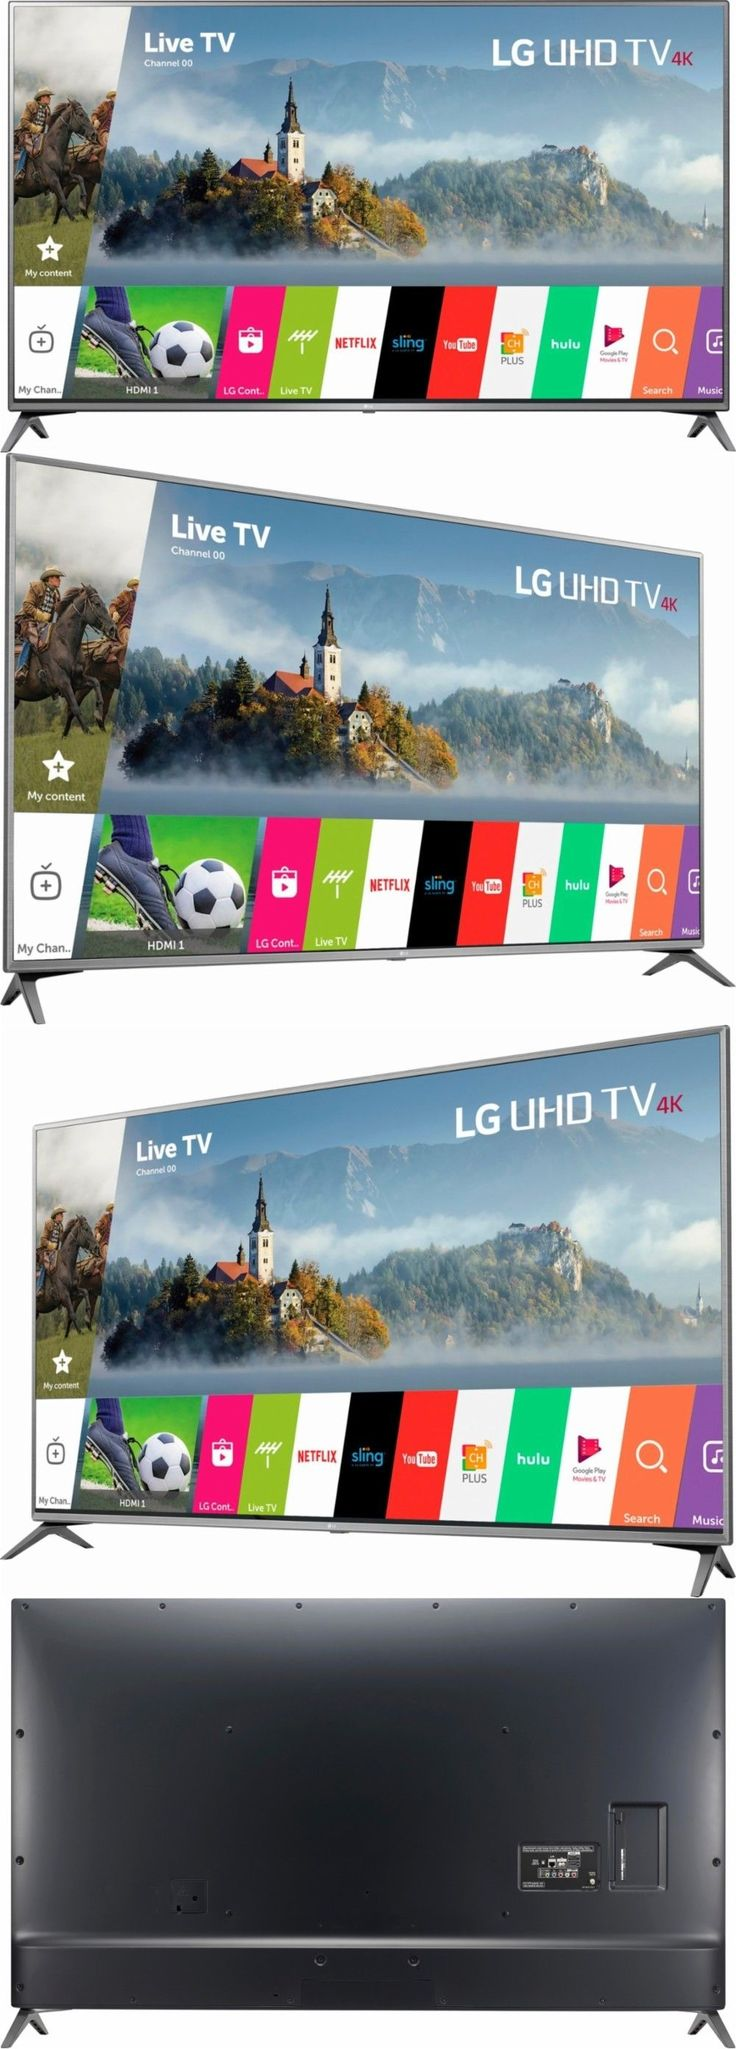 Televisions: Lg 75 Inch 4K Ultra Hd Smart Tv 75Uj6470 Uhd Tv Brand New -> BUY IT NOW ONLY: $1897.95 on eBay!